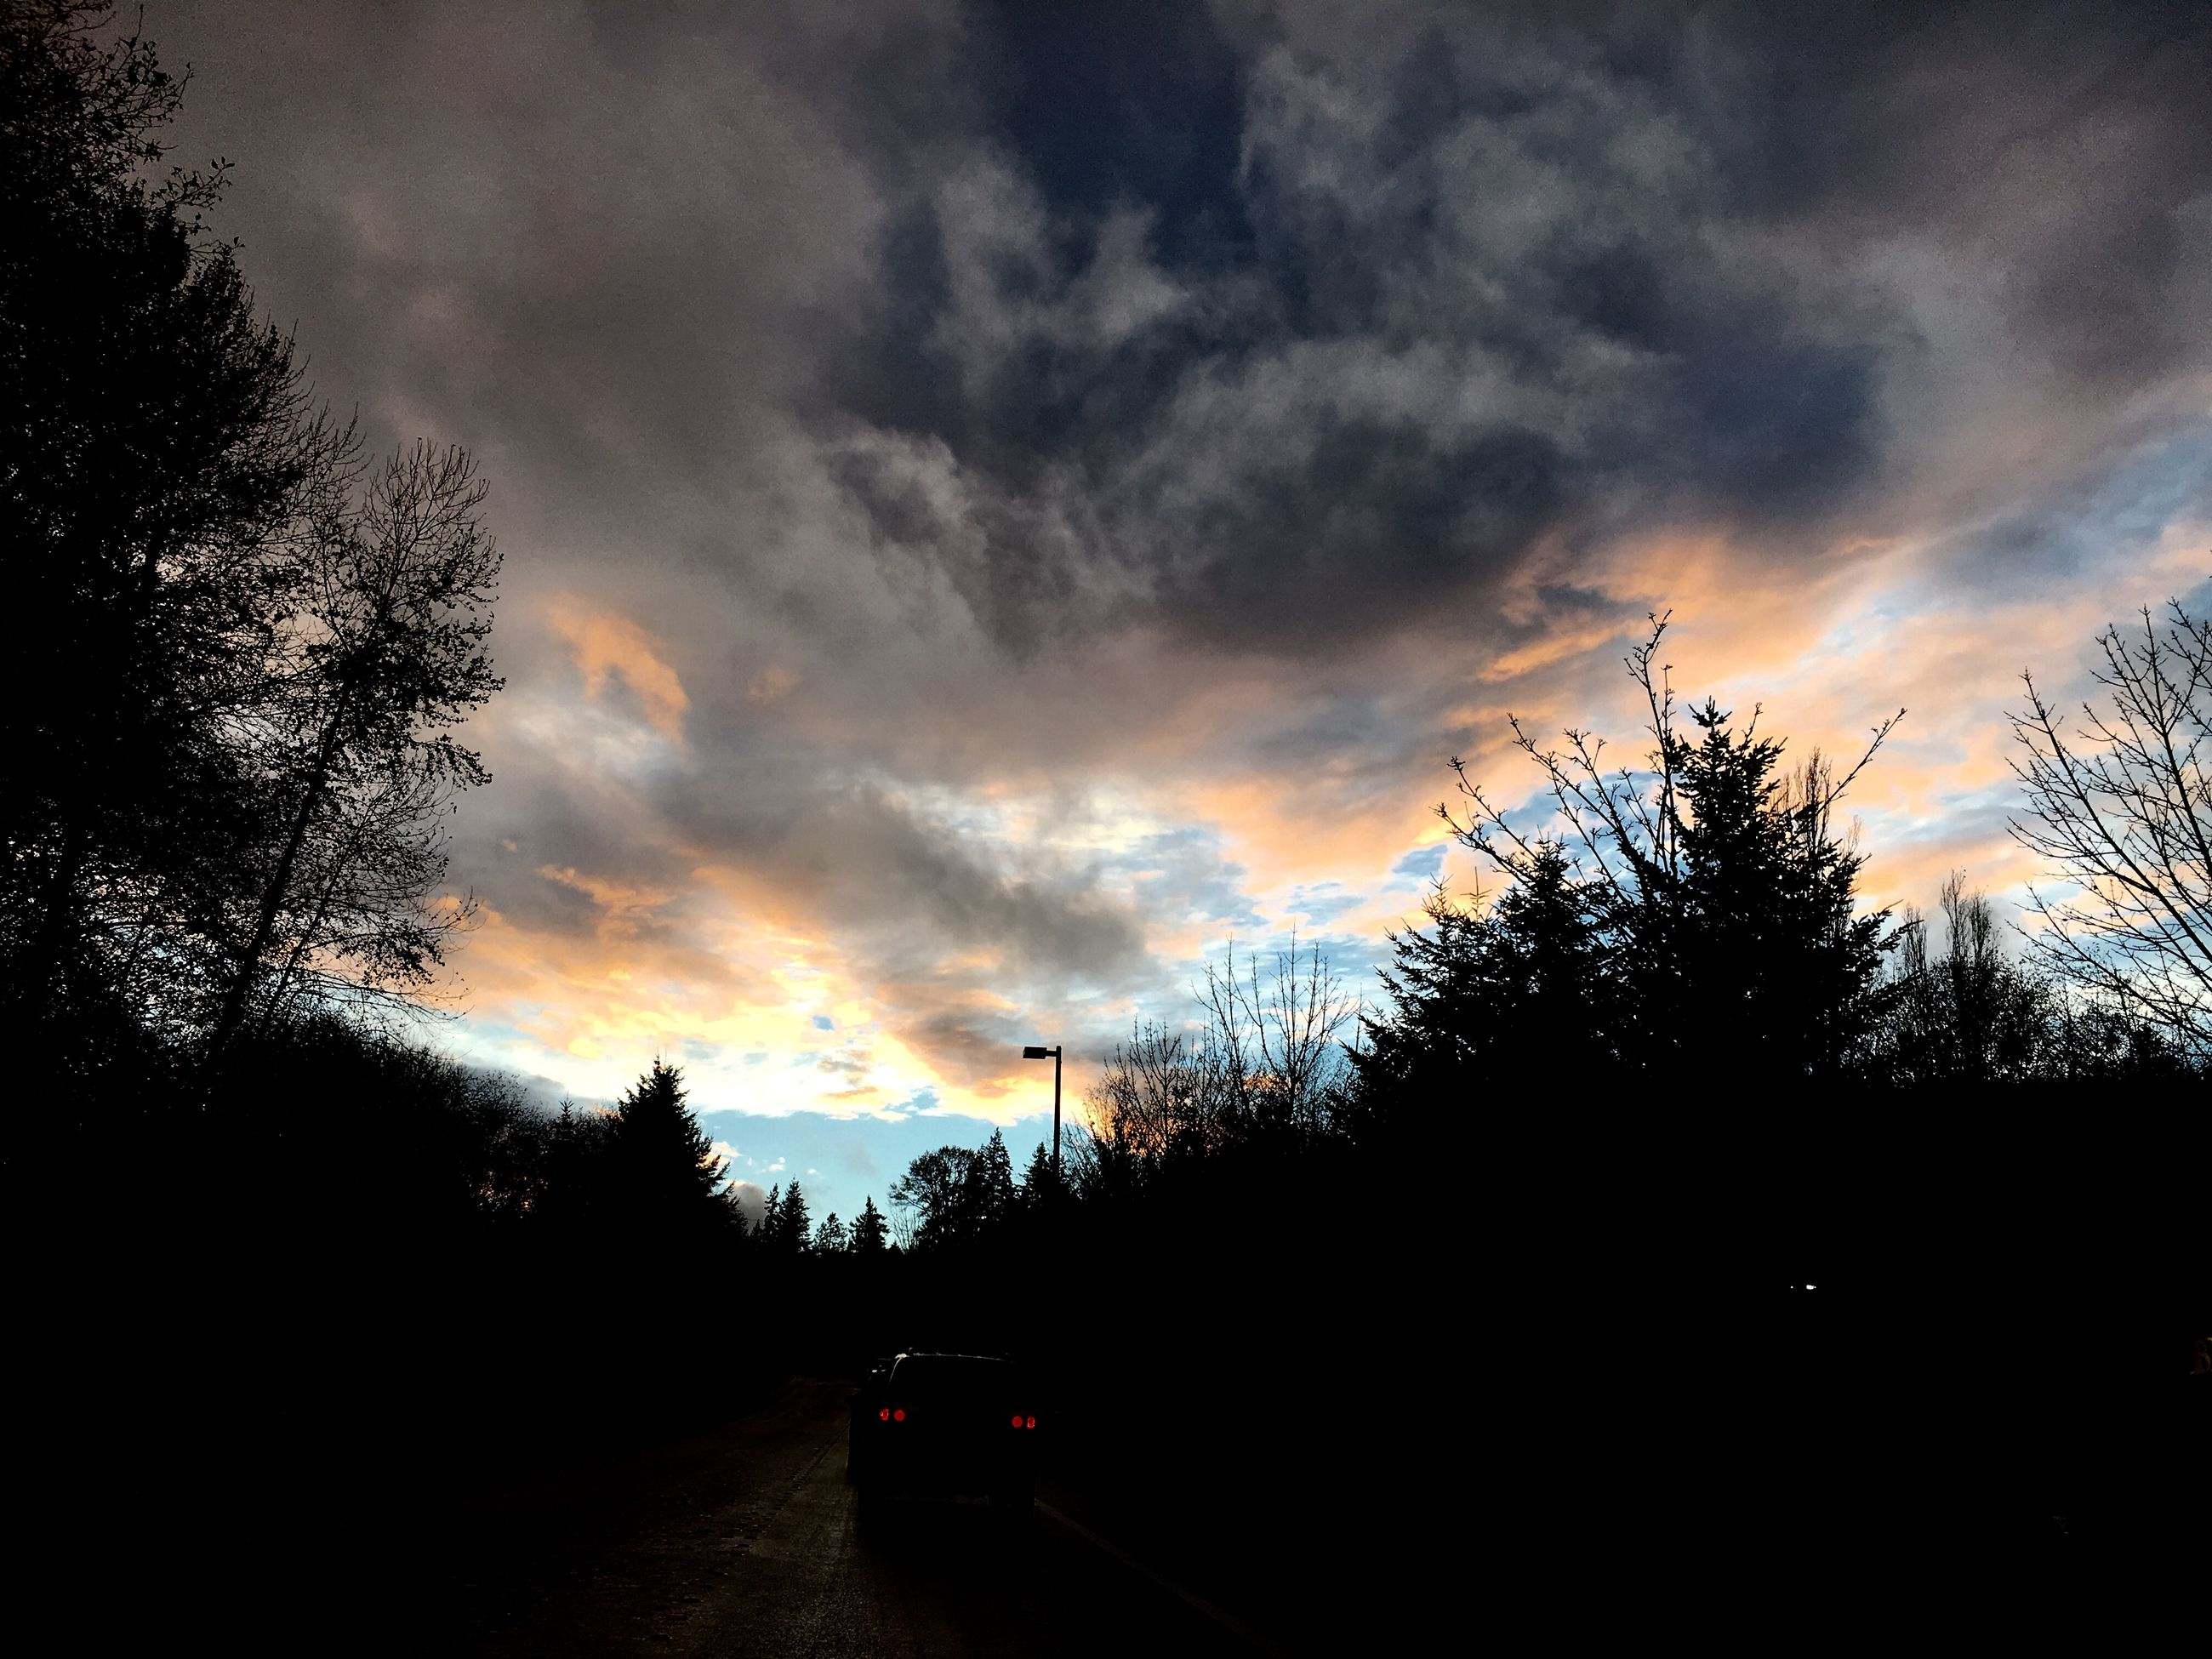 sunset, silhouette, sky, cloud - sky, tree, cloudy, cloud, beauty in nature, tranquility, scenics, tranquil scene, nature, dramatic sky, weather, overcast, orange color, dusk, storm cloud, outdoors, idyllic